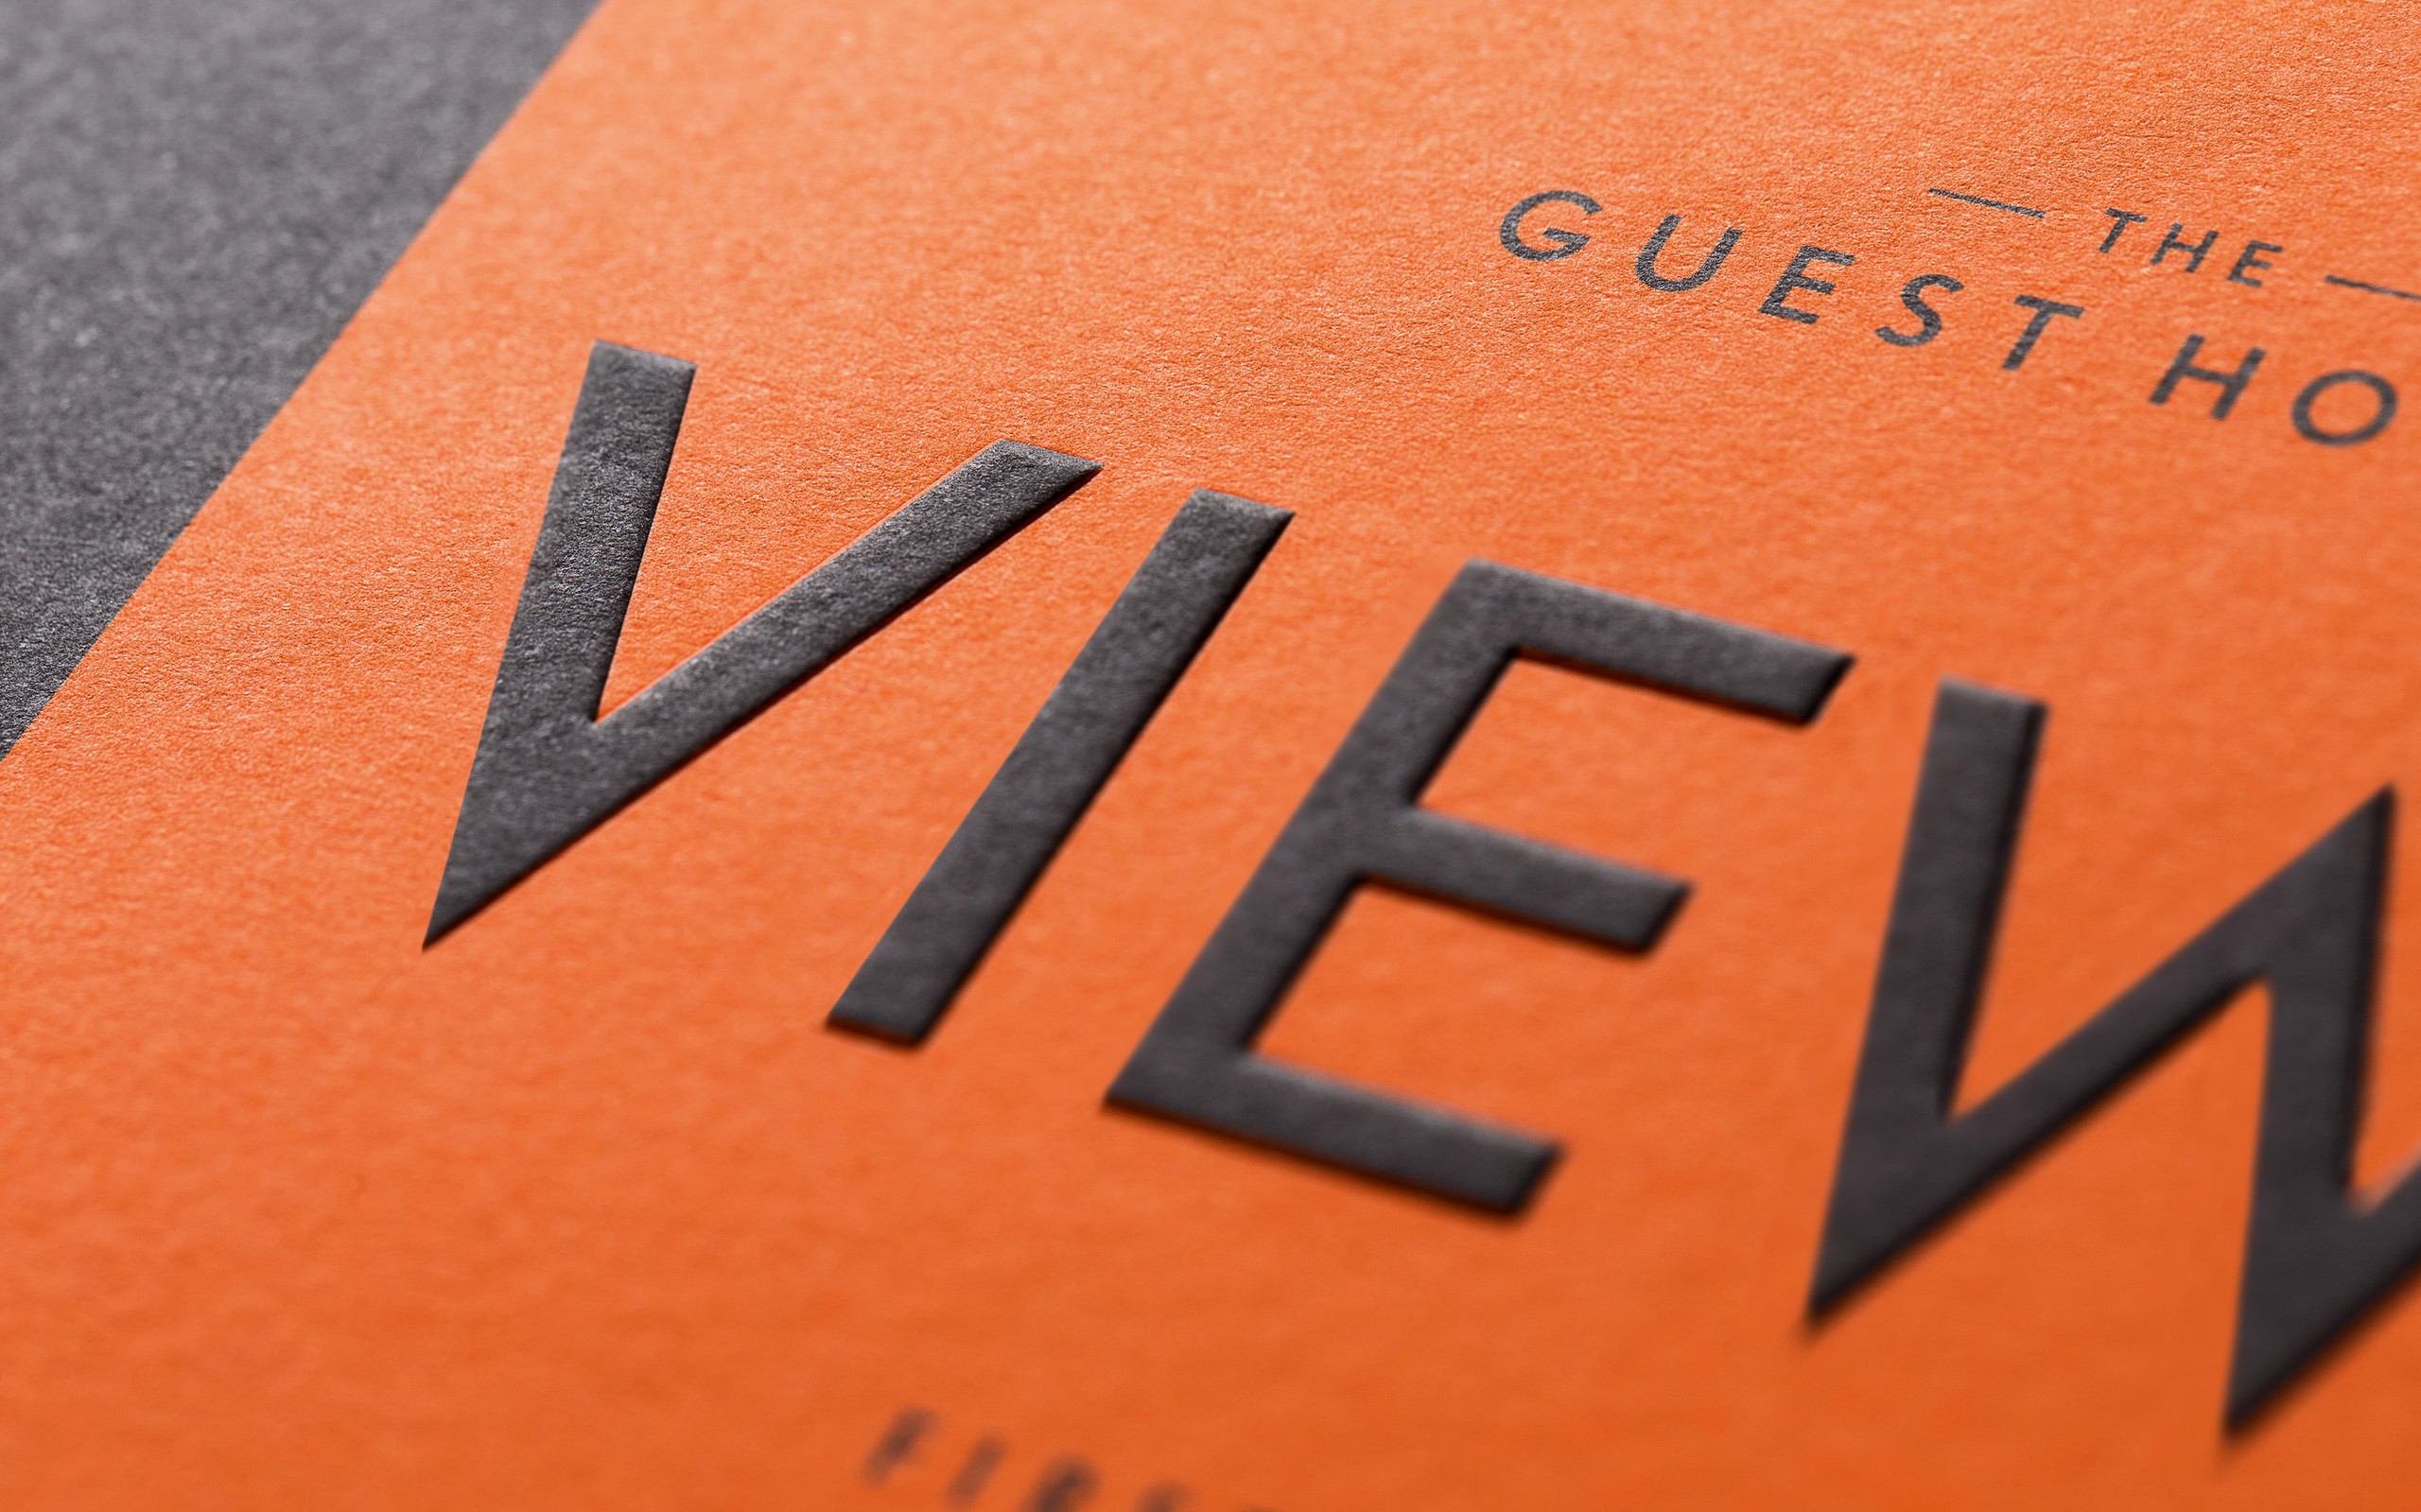 The Guesthouse Vienna Brand Design